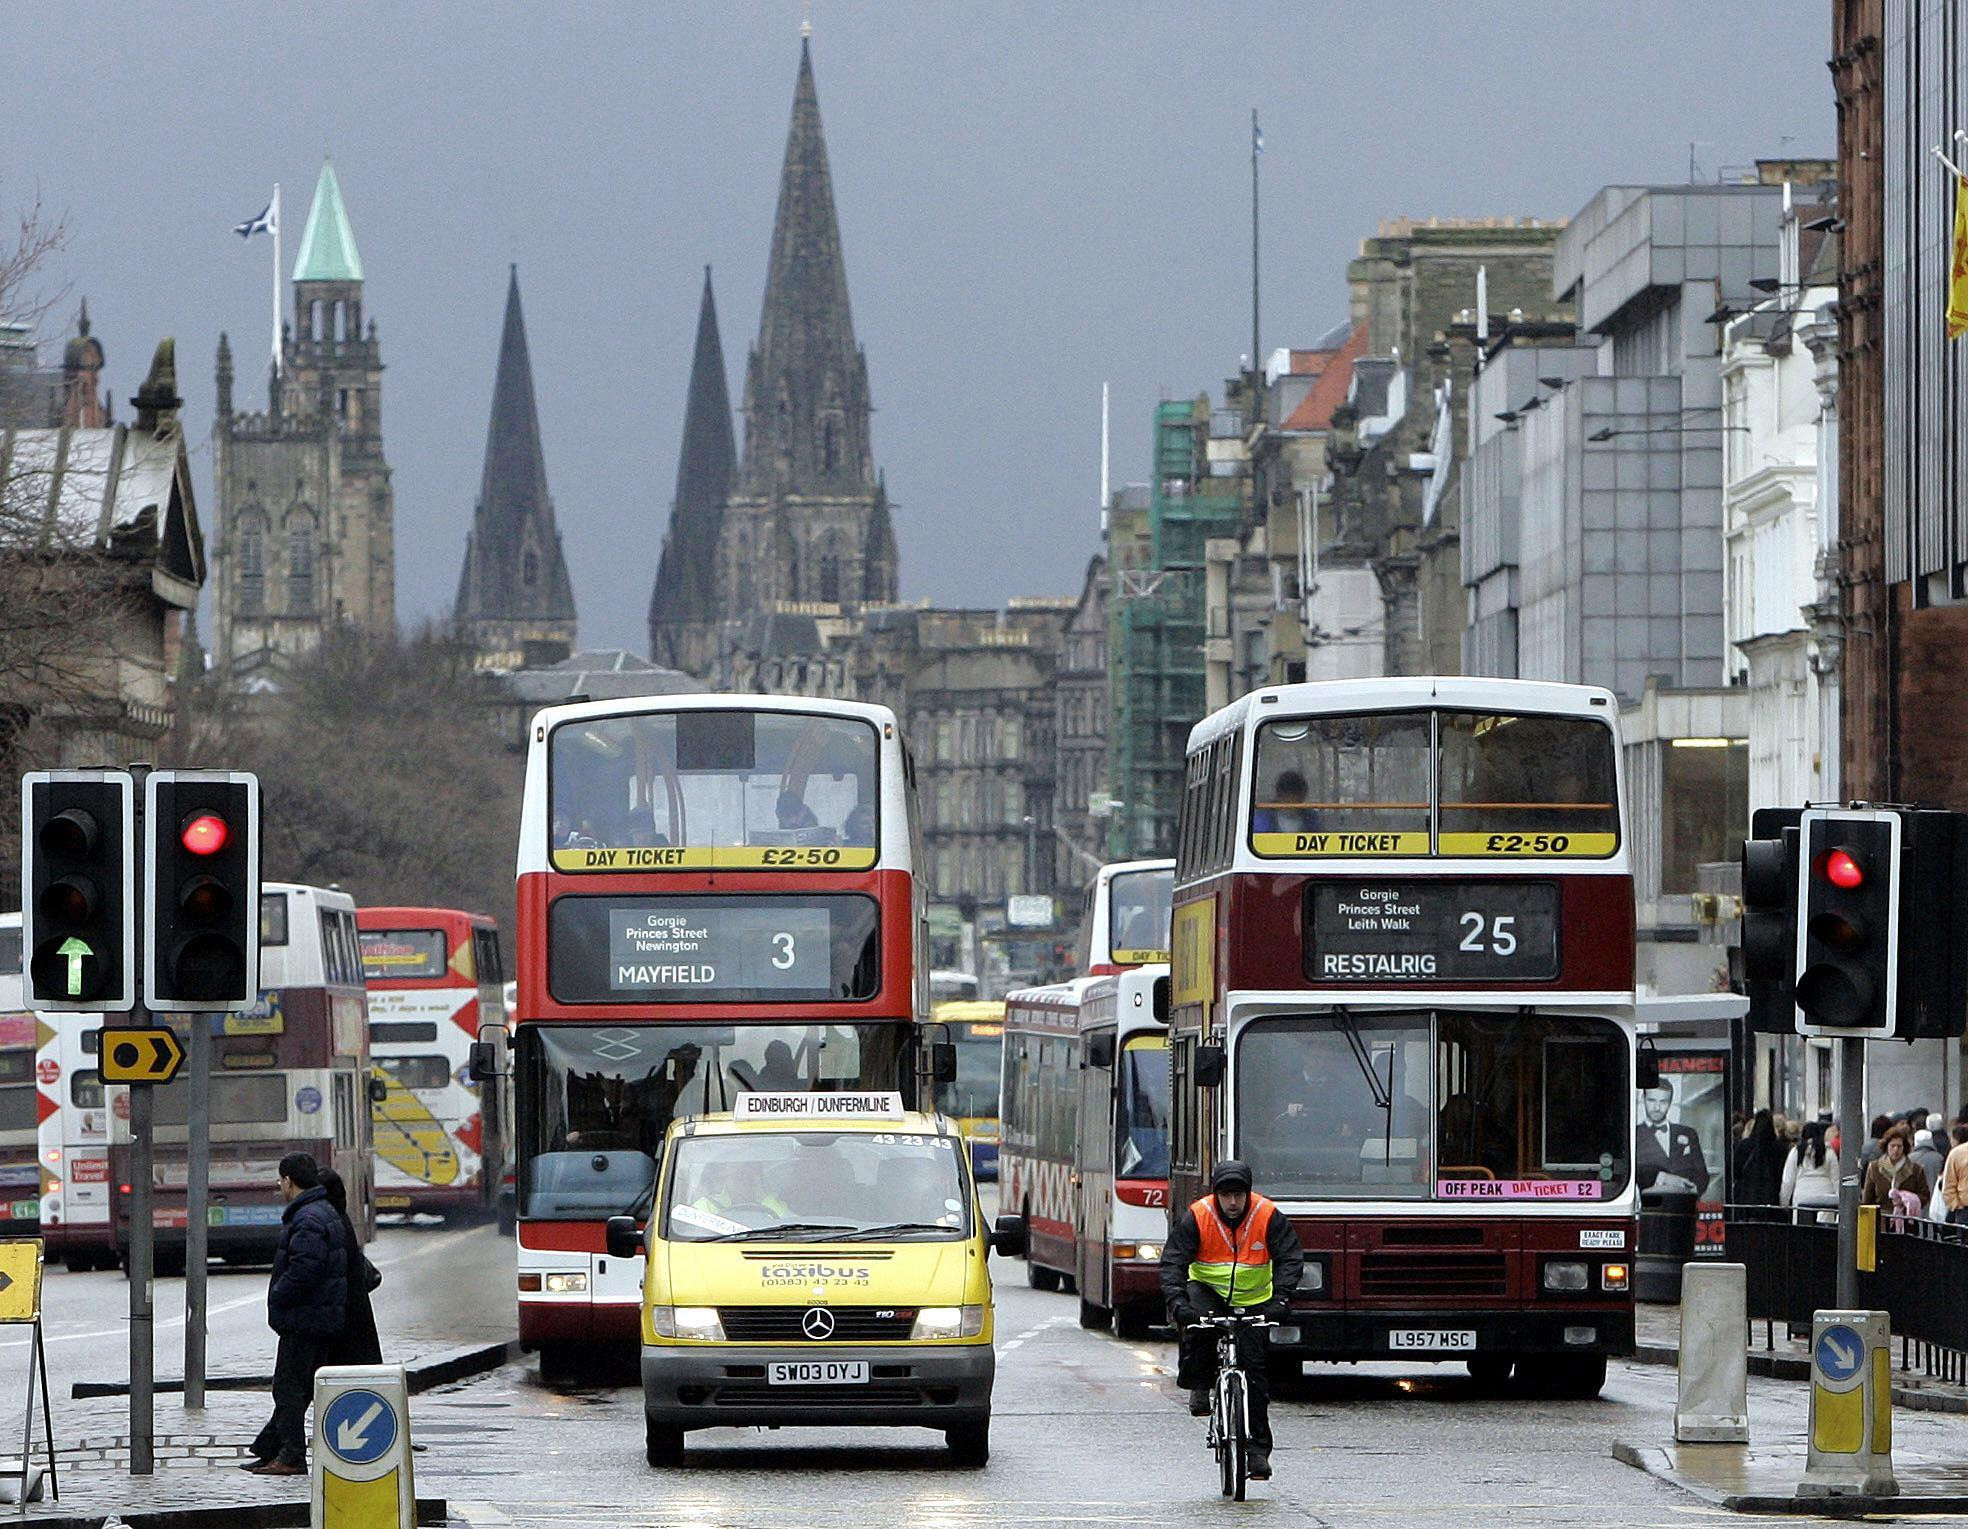 Transport minister Humza Yousaf has issued a call for views on proposals aimed at making the concessionary travel scheme affordable in future. (Andrew Milligan/PA)